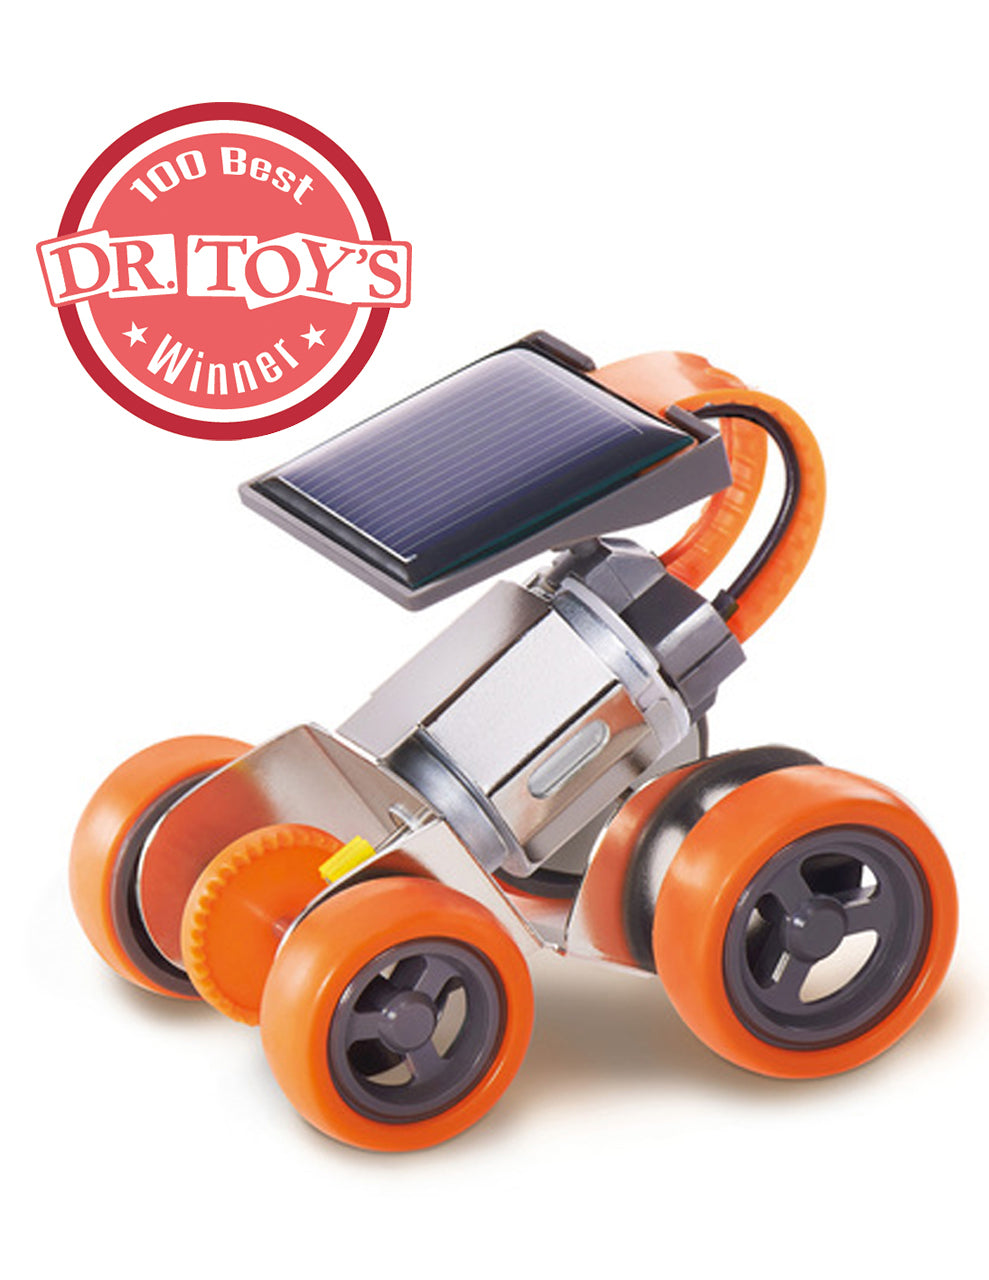 OWI Robot - OWI-MSK681 - Rookie Solar Racer v2 | STEM Toy Store | STEMToyStore.com